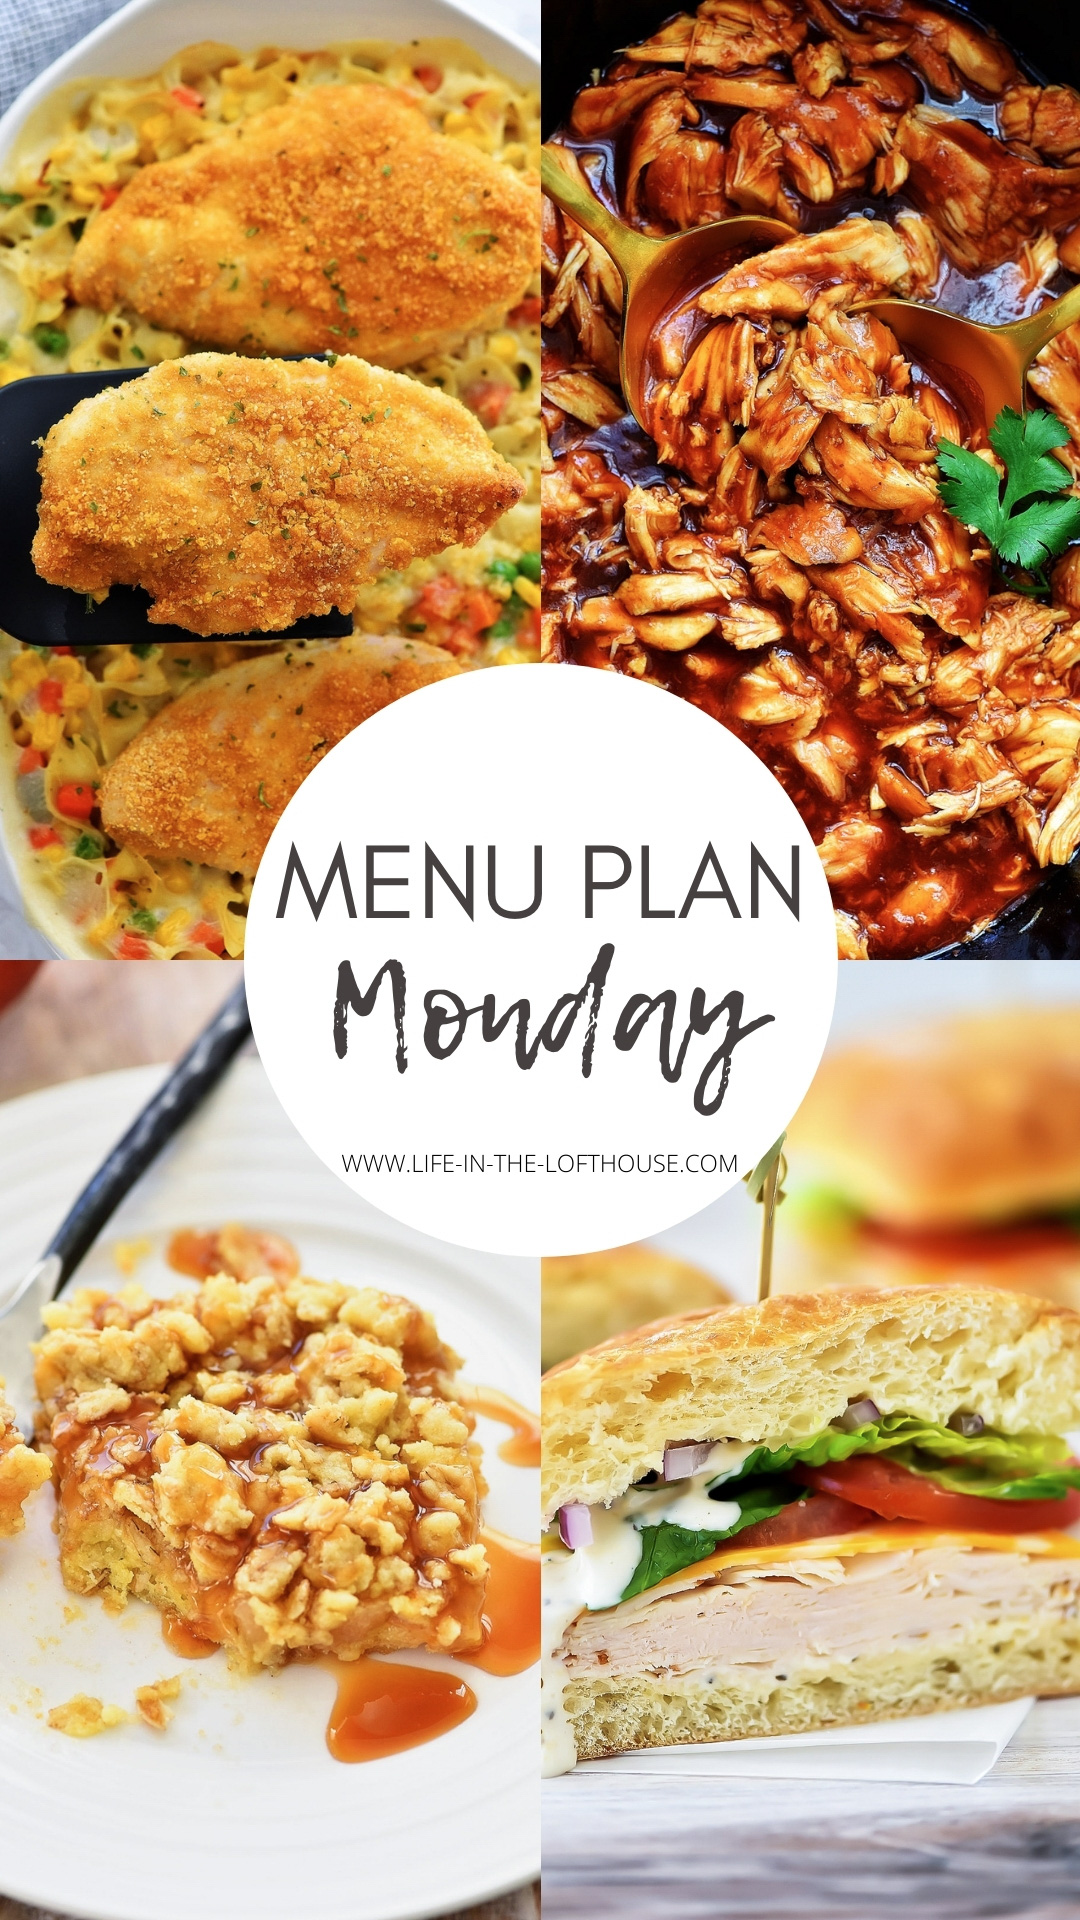 Menu Plan Monday is a family friendly weekly menu with six dinners and one dessert. Life-in-the-Lofthouse.com